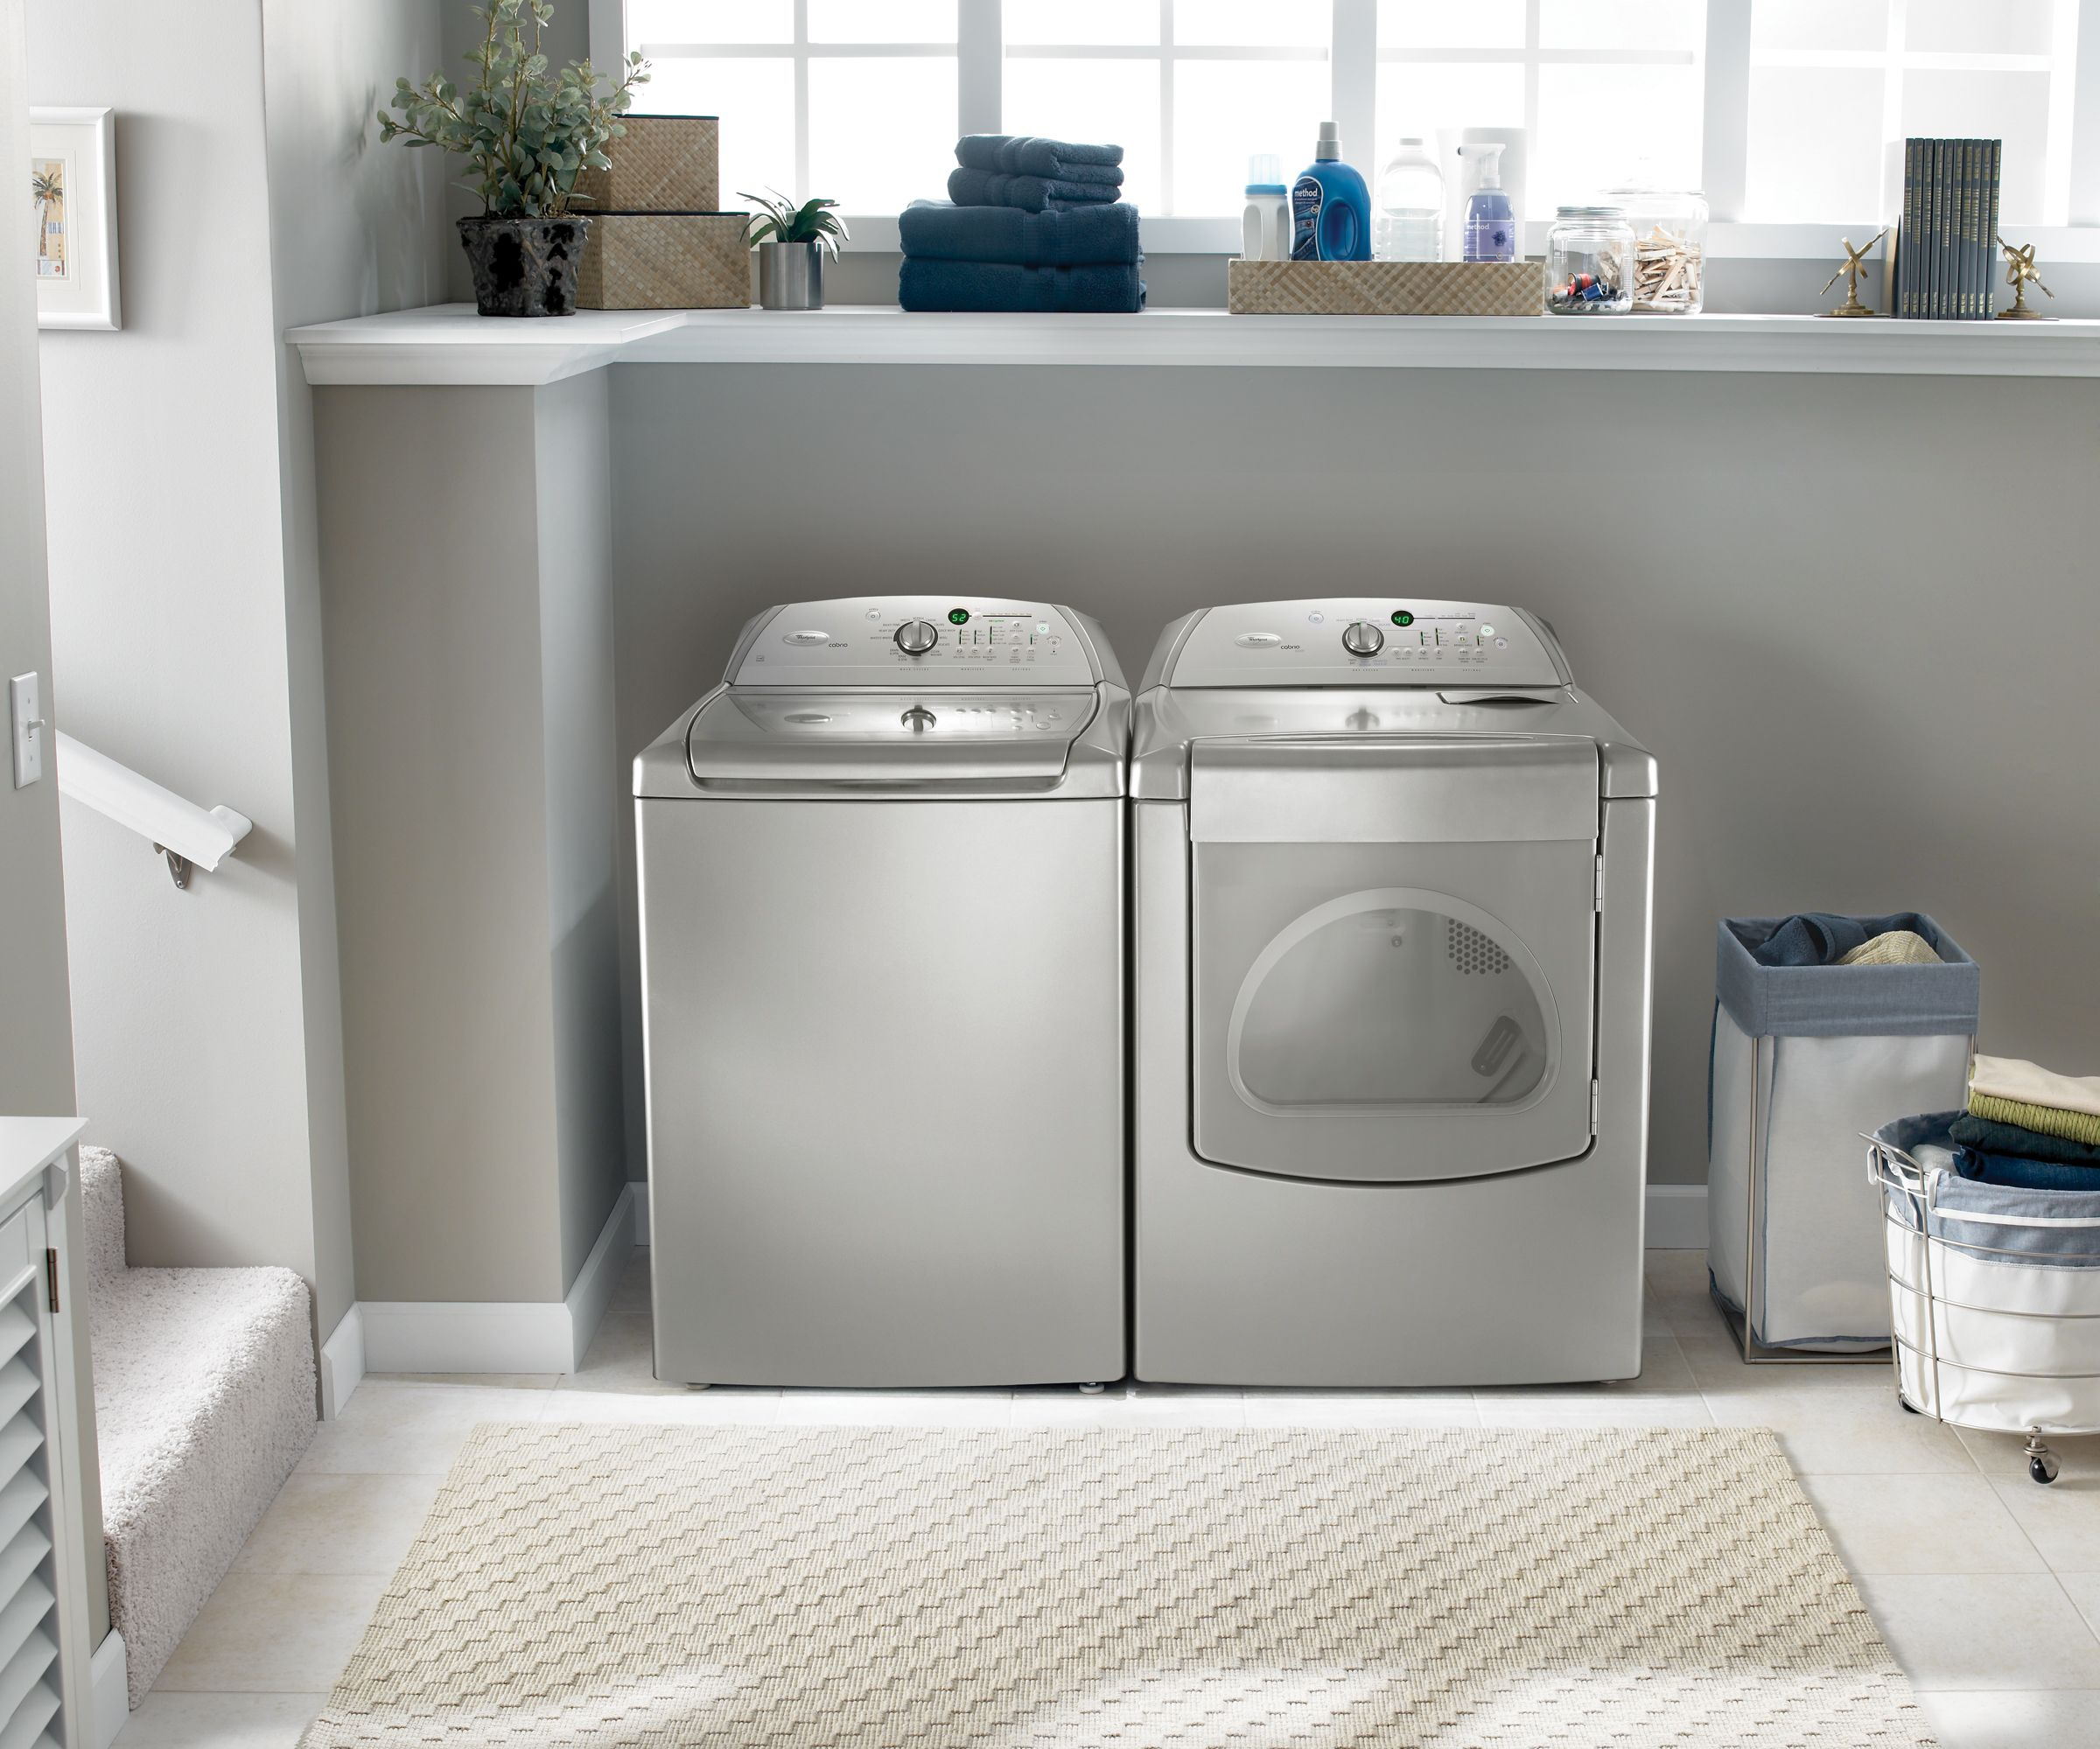 Whirlpool Cabrio™ 7.0 cu. ft. Electric Dryer - WED6600